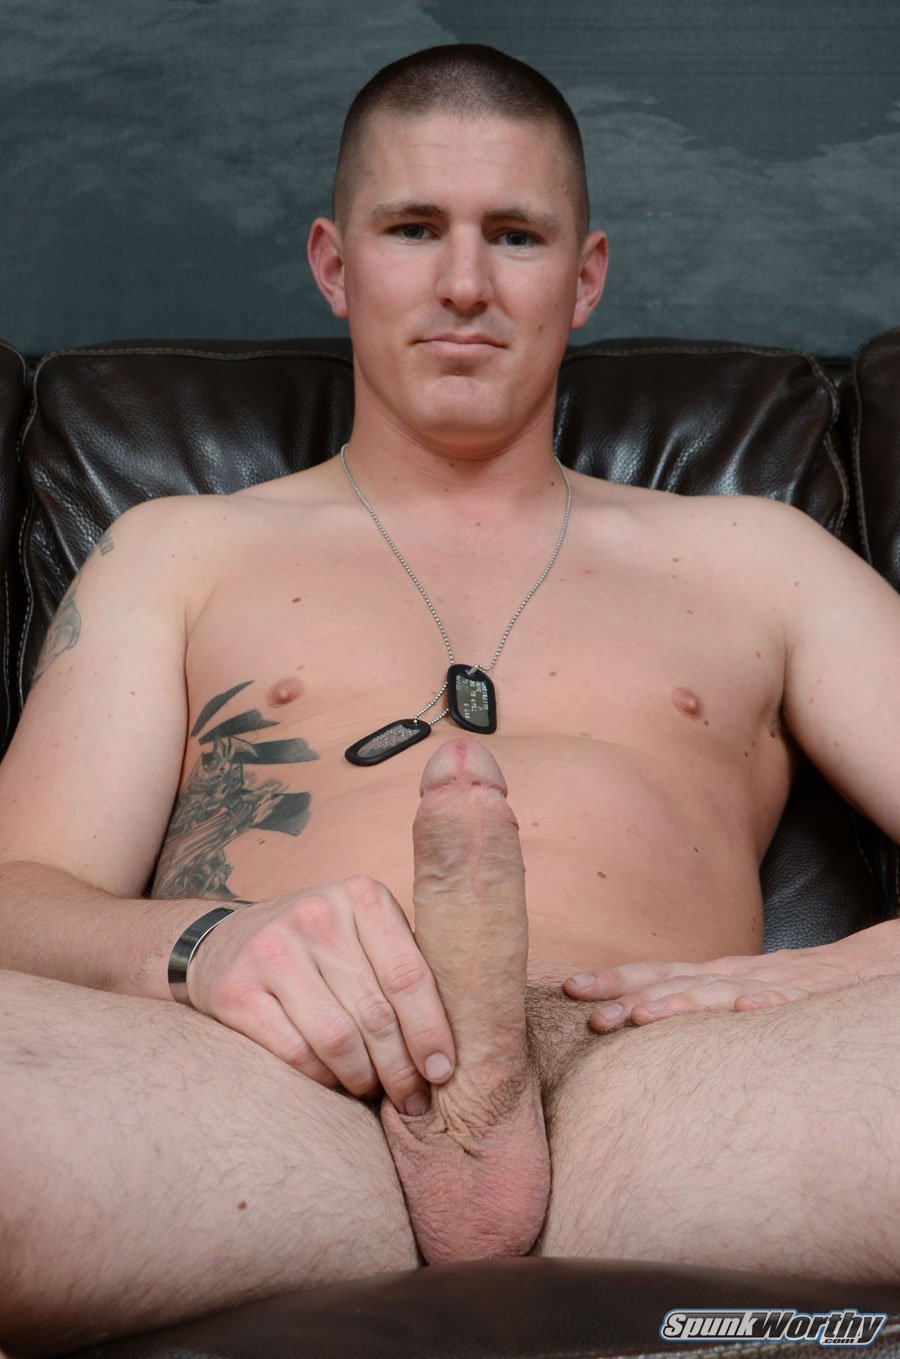 SpunkWorthy Eli Straight Marine With Big Uncut Cock Masturbating Jerking Off 06 Real Straight Marine With Huge Uncut Cock Shoots His Cum Load